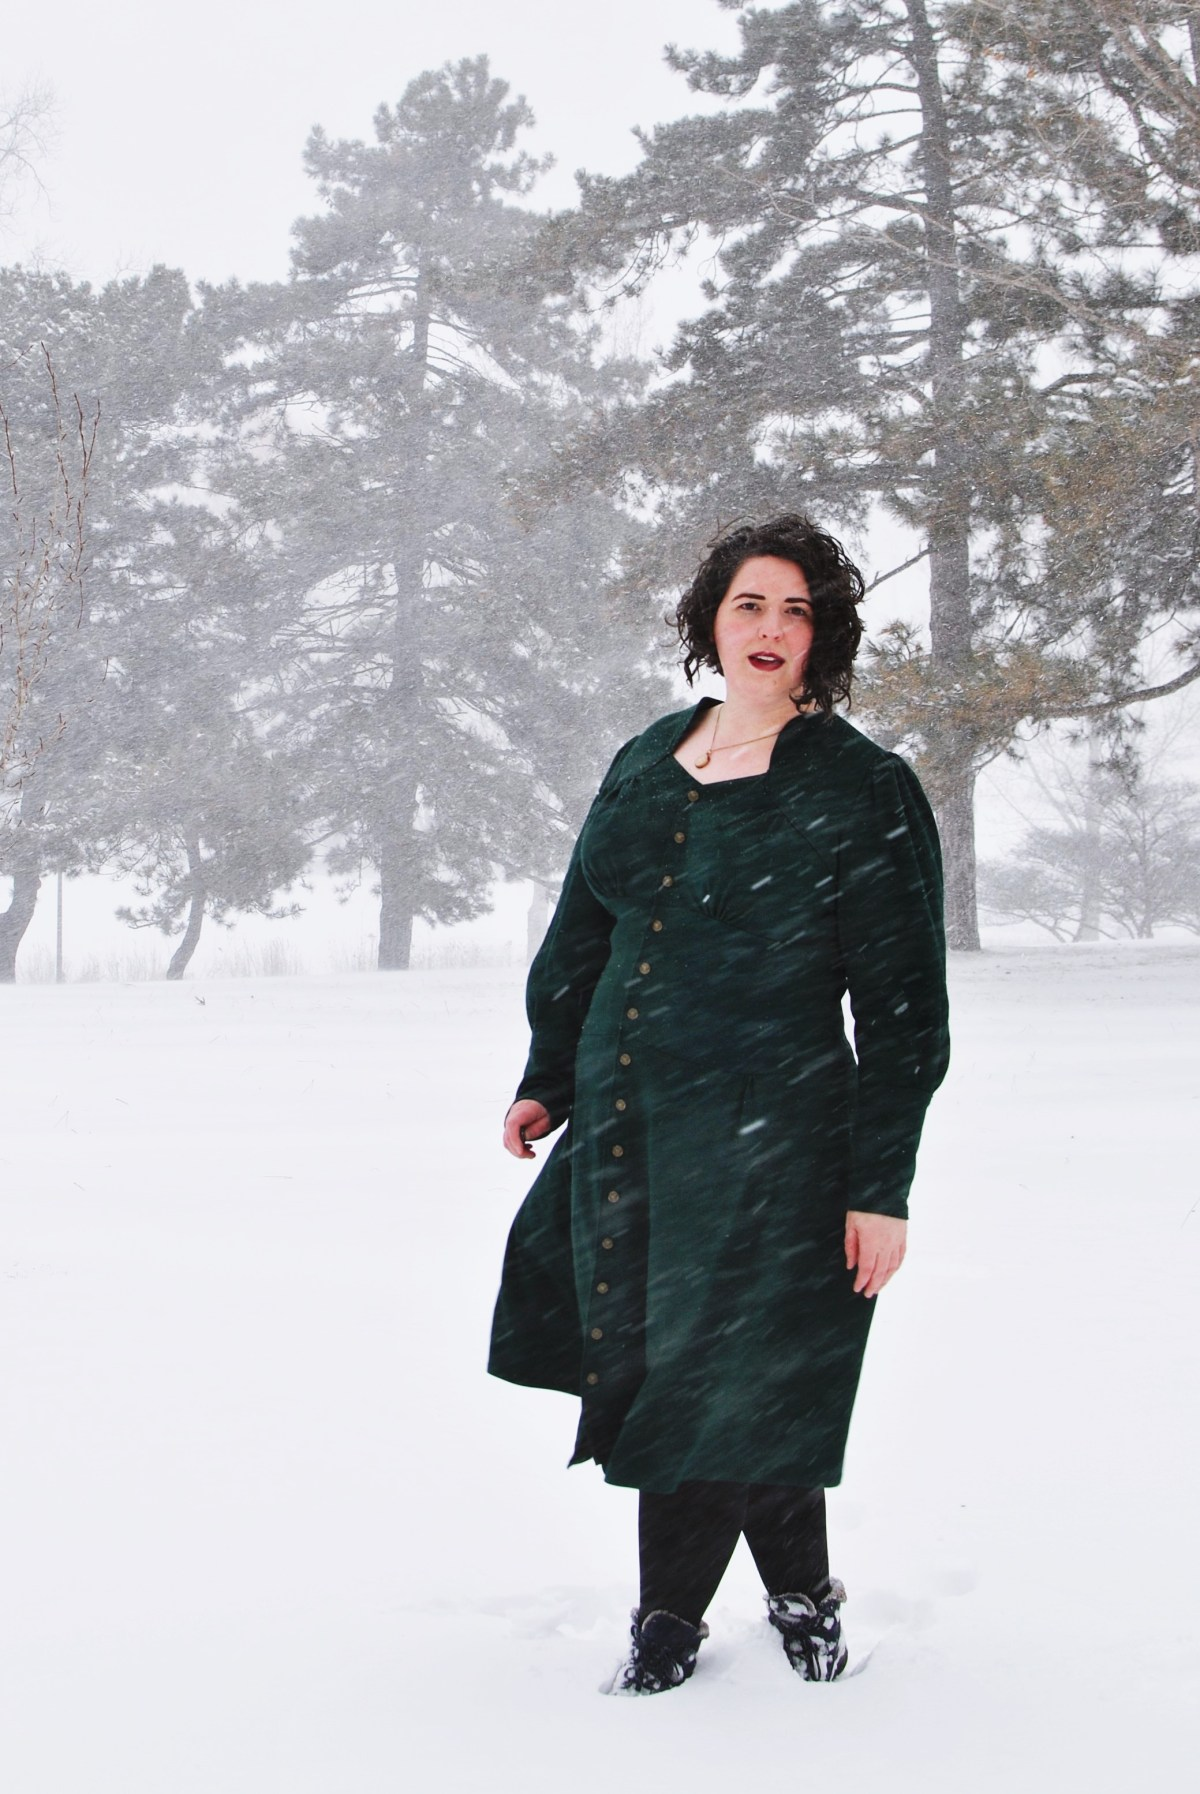 Shannon standing outdoors in blowing snow, wearing a knee-length dark green dress with buttons down the front. The wind blows the skirt of the dress around and snow dots the image.